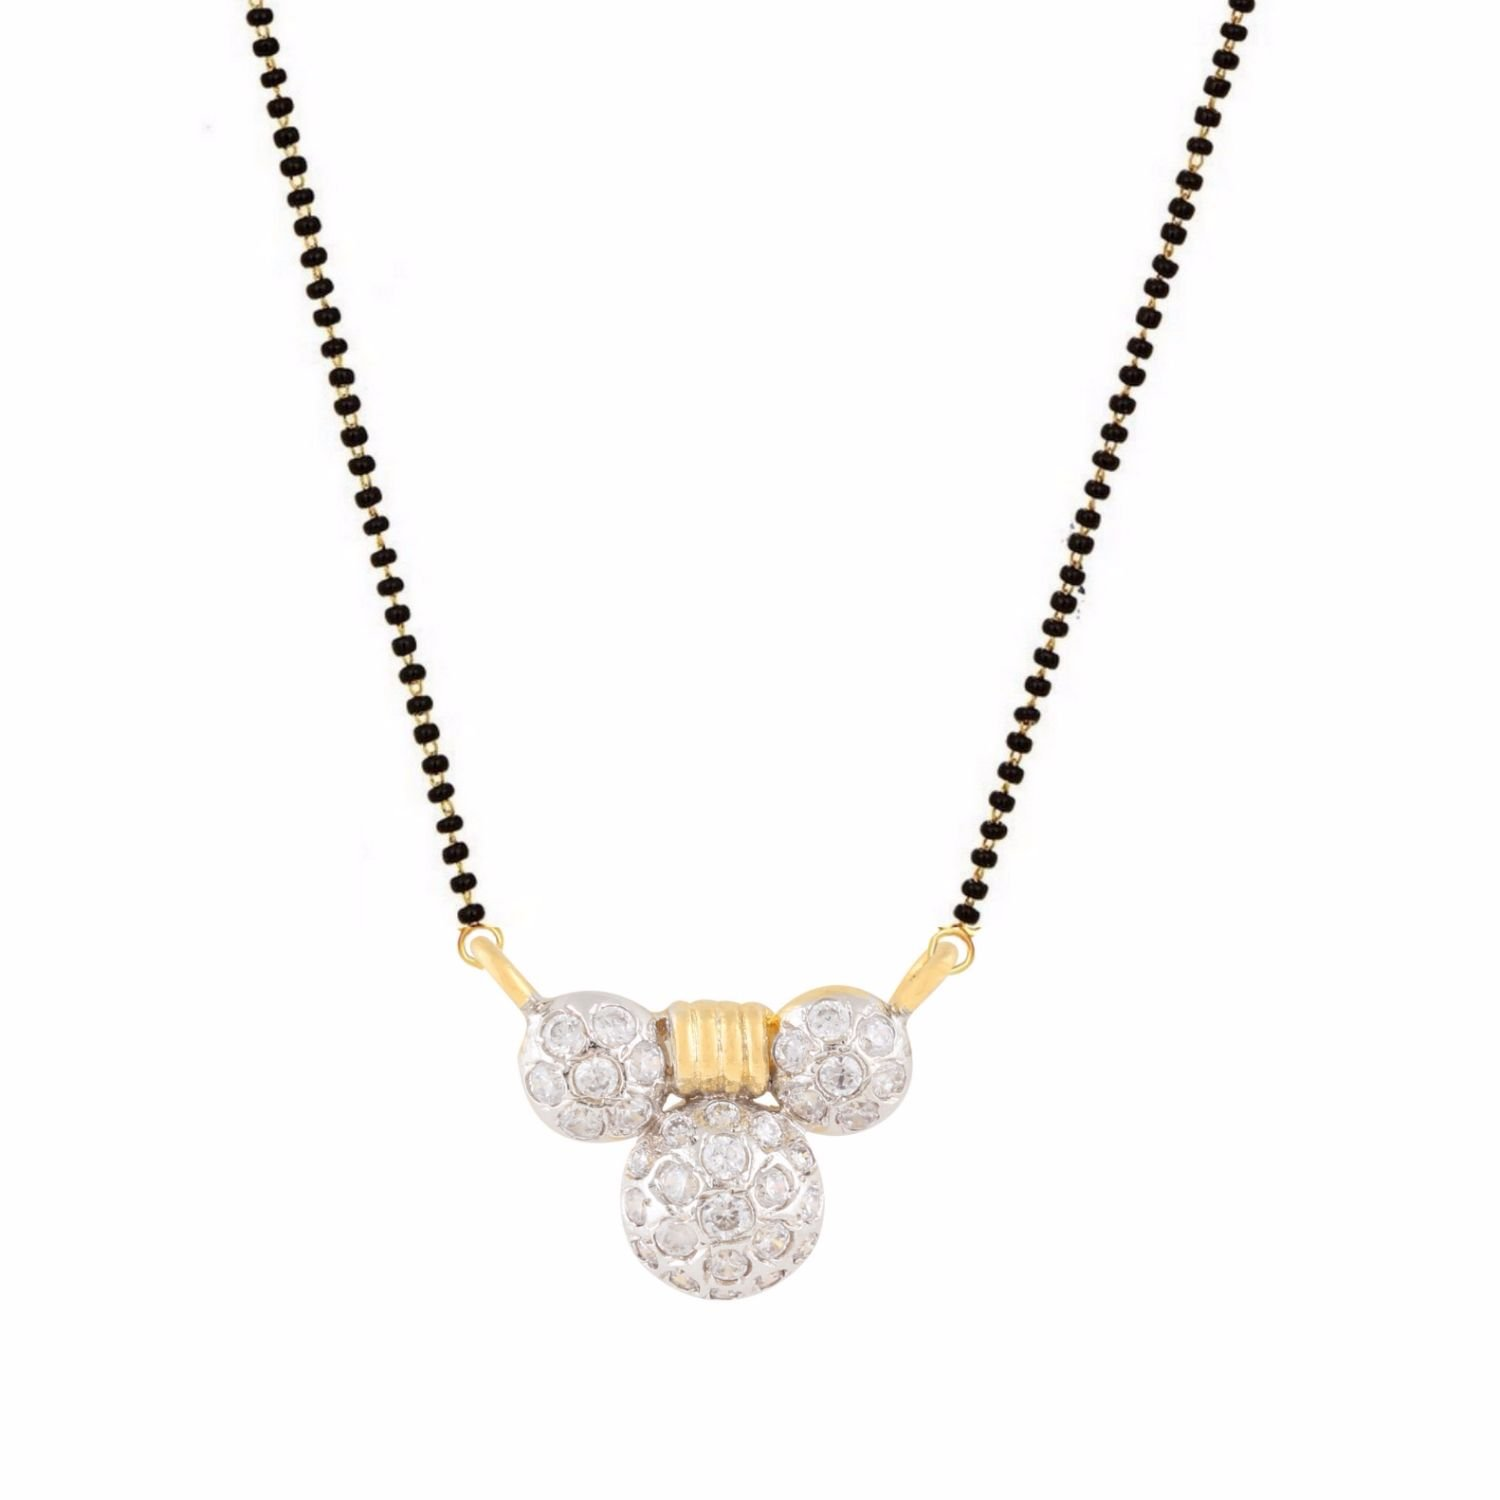 Efulgenz Indian Bollywood Traditional Gold Plated American Diamond CZ Mangalsutra Pendant Necklace Jewelry for Women